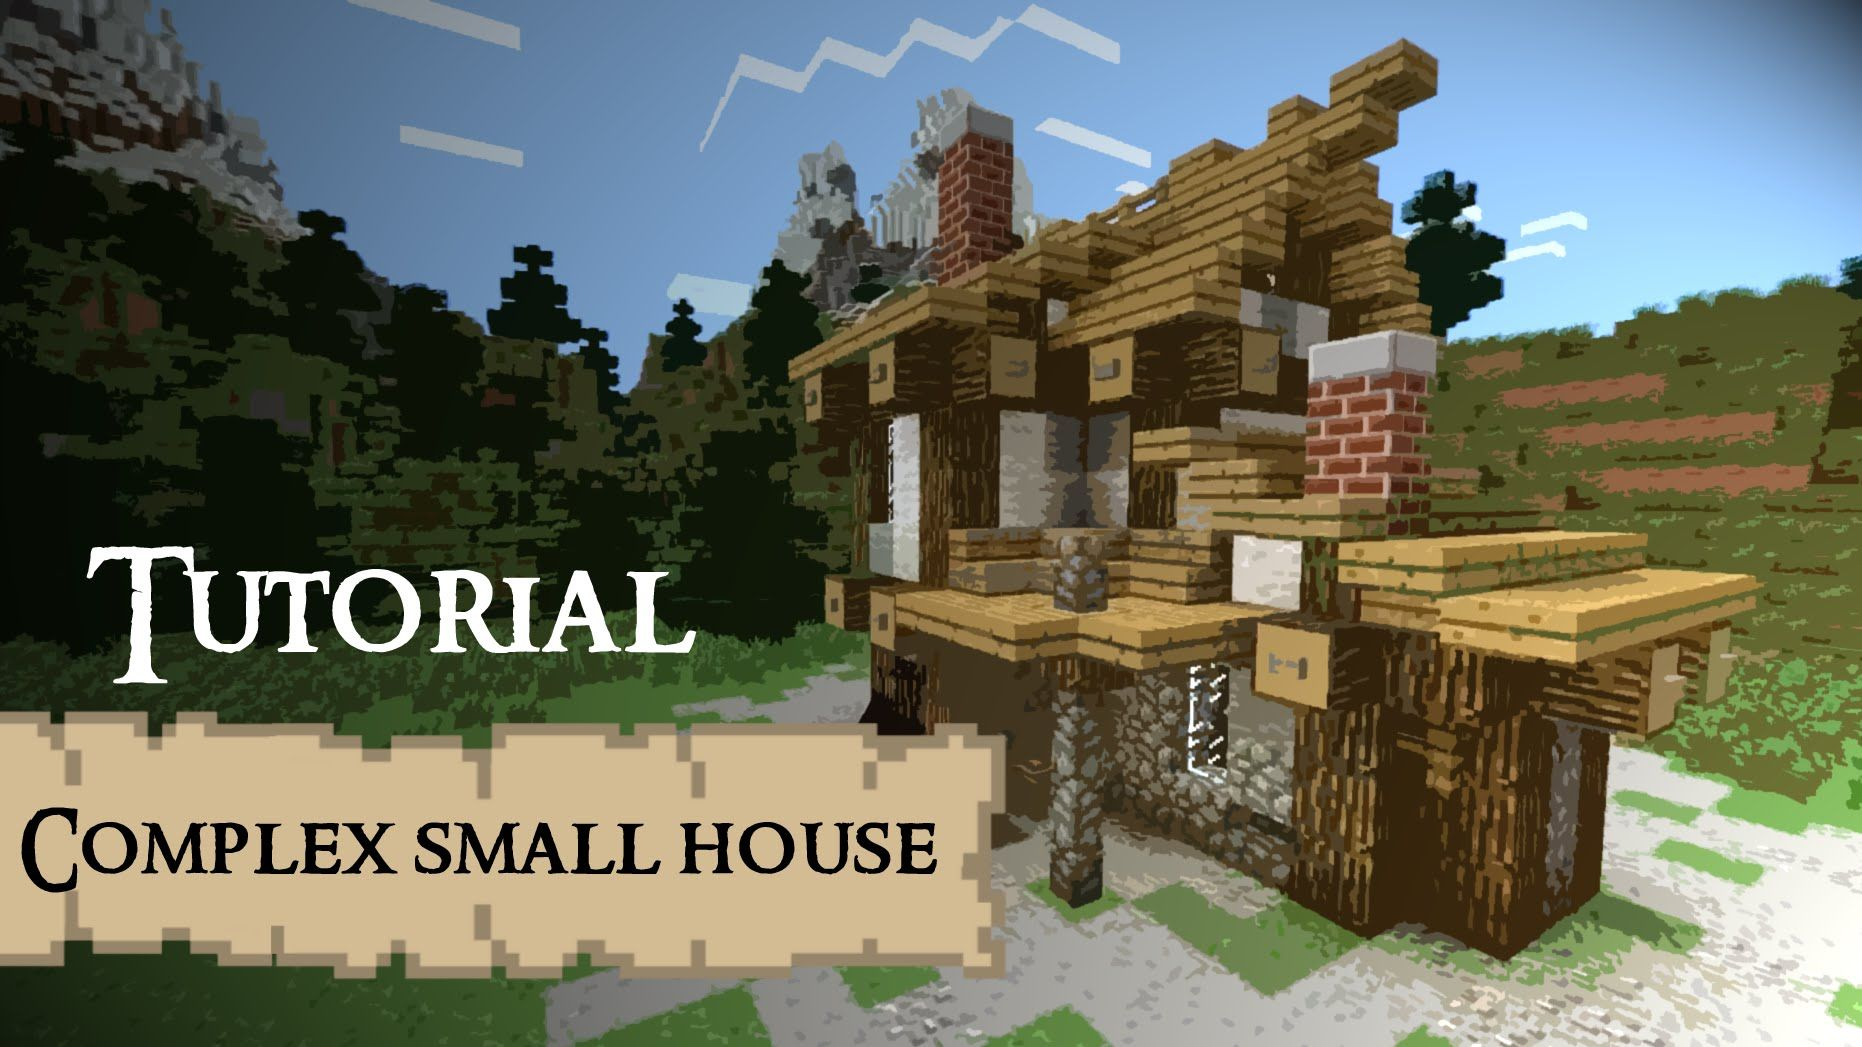 COMPLEX SMALL HOUSE  Medieval Minecraft Tutorial. COMPLEX SMALL HOUSE  Medieval Minecraft Tutorial   Minecraft